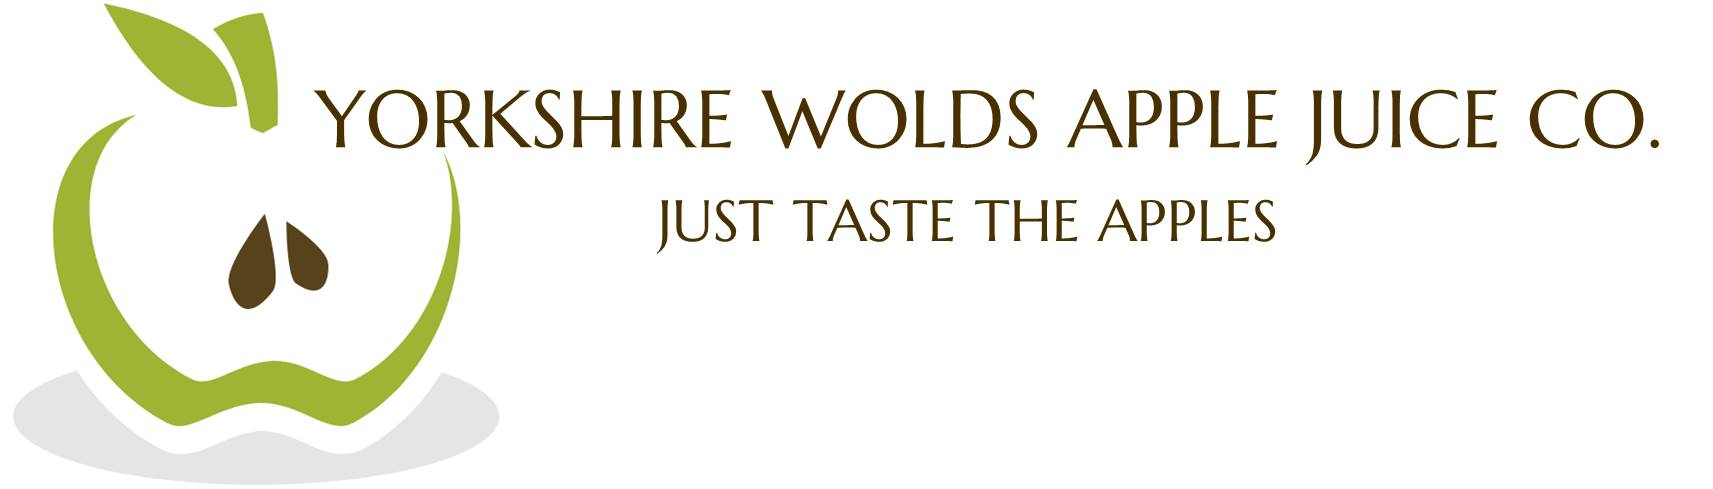 Yorkshire Wolds Apple Juice Co Logo